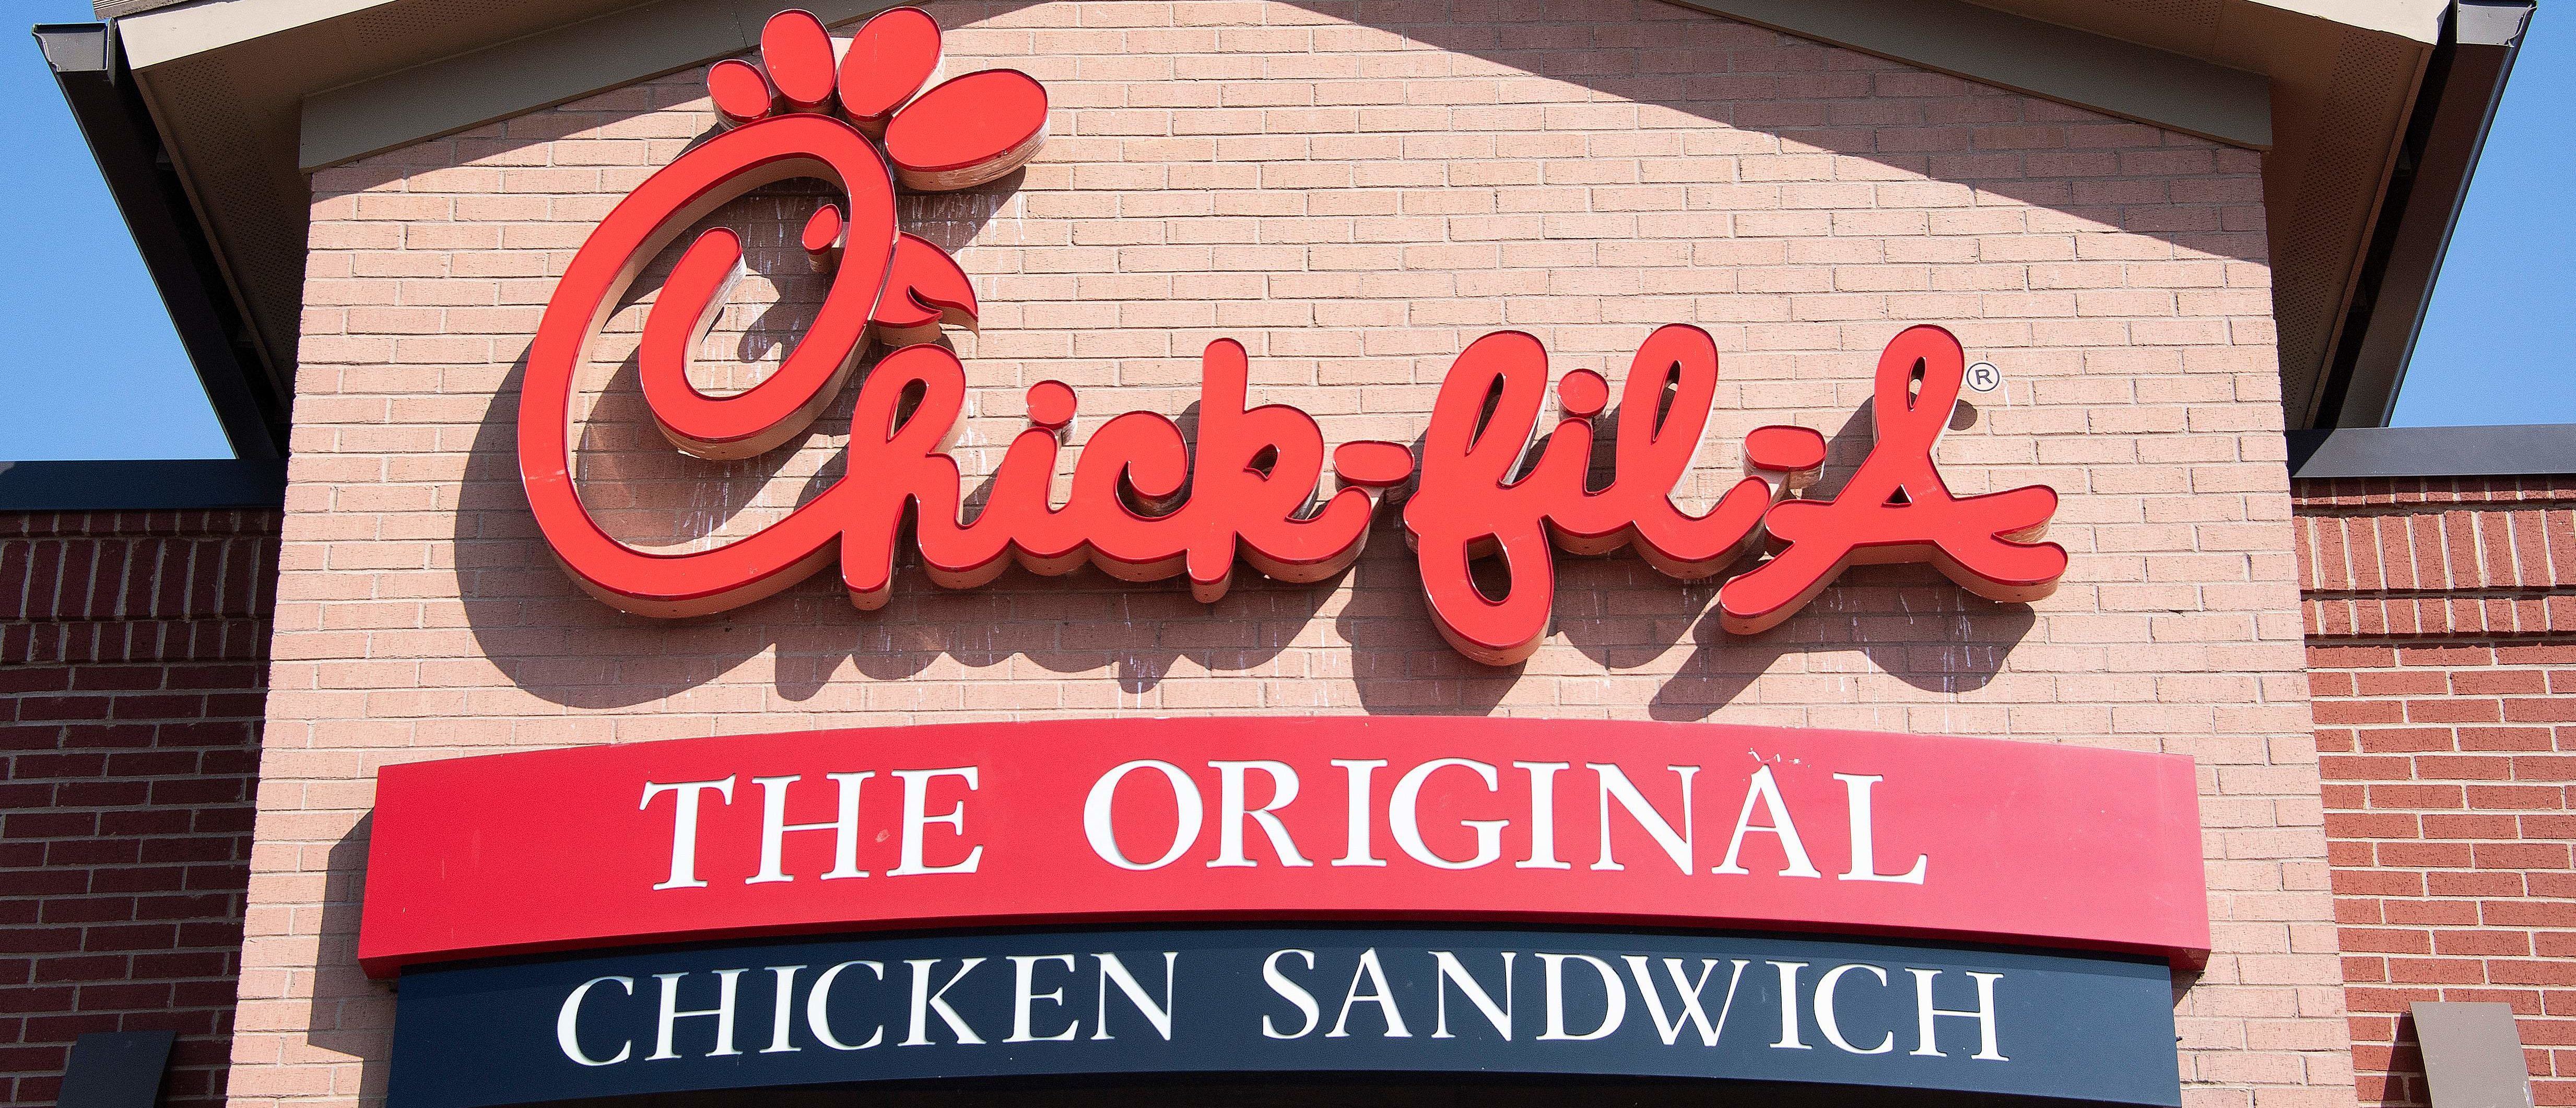 Snopes Butchers Fact Check Of Viral Smear Of Chick-Fil-A